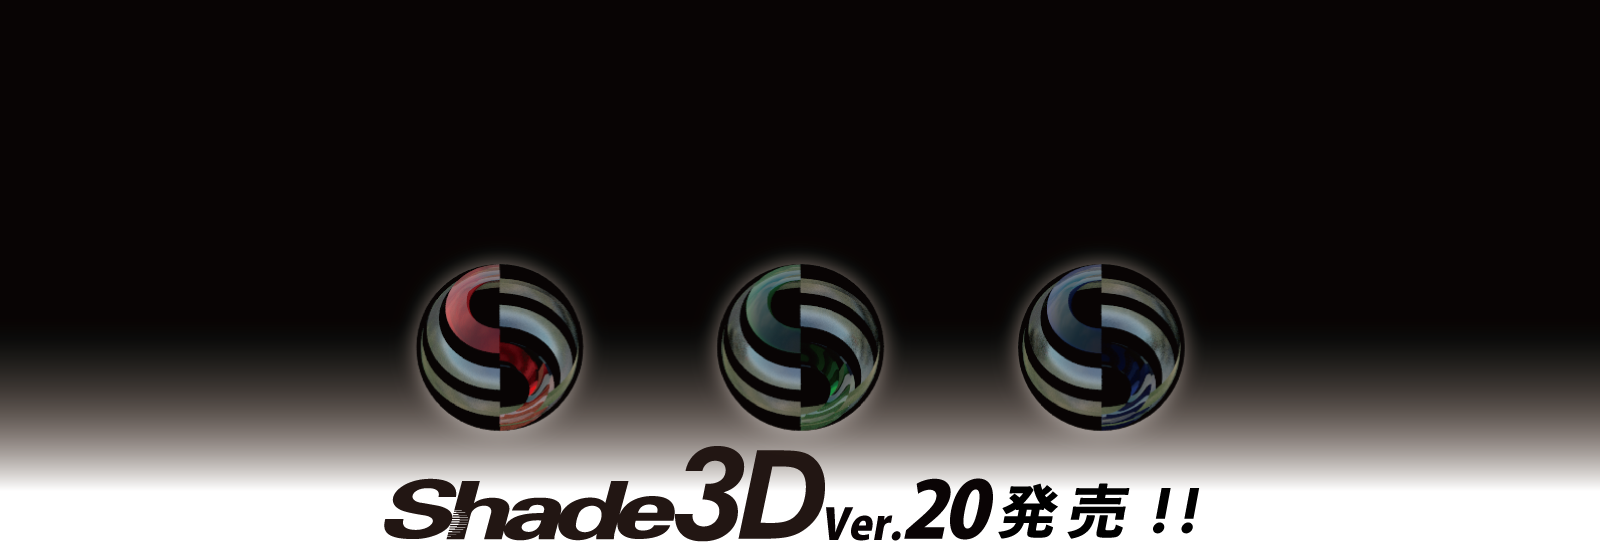 Top banner Shade3D Ver.20